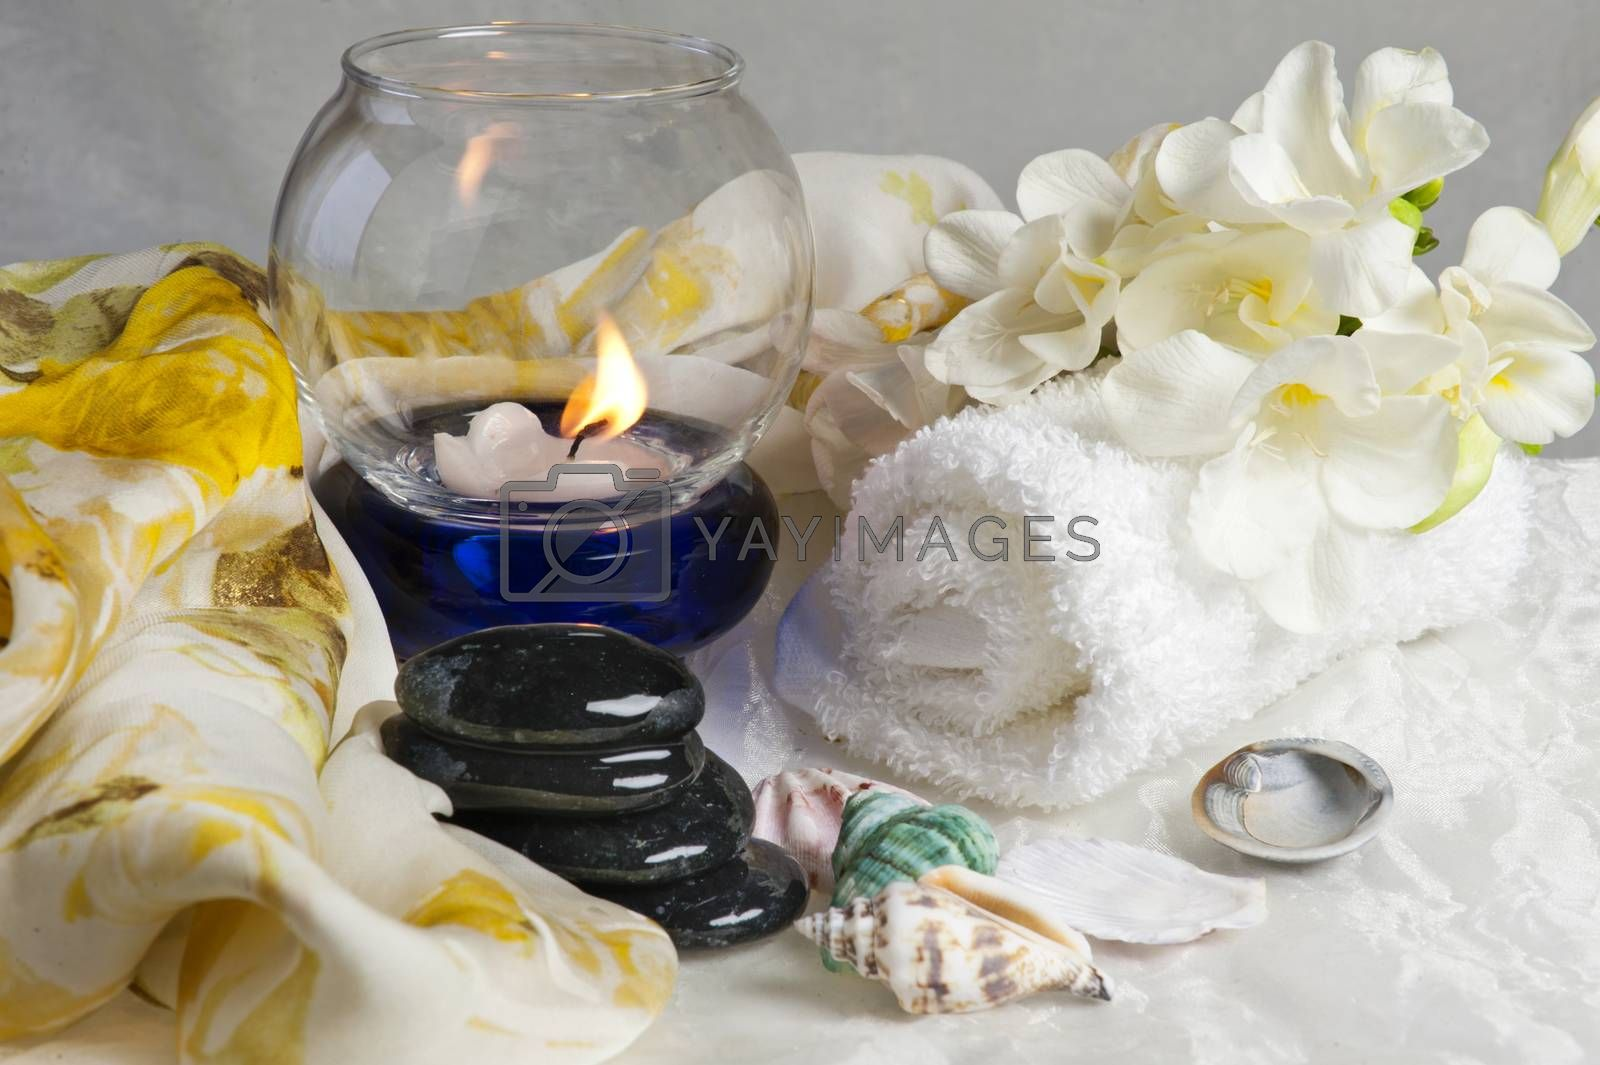 salts, creams, oil, hygiene products and body care